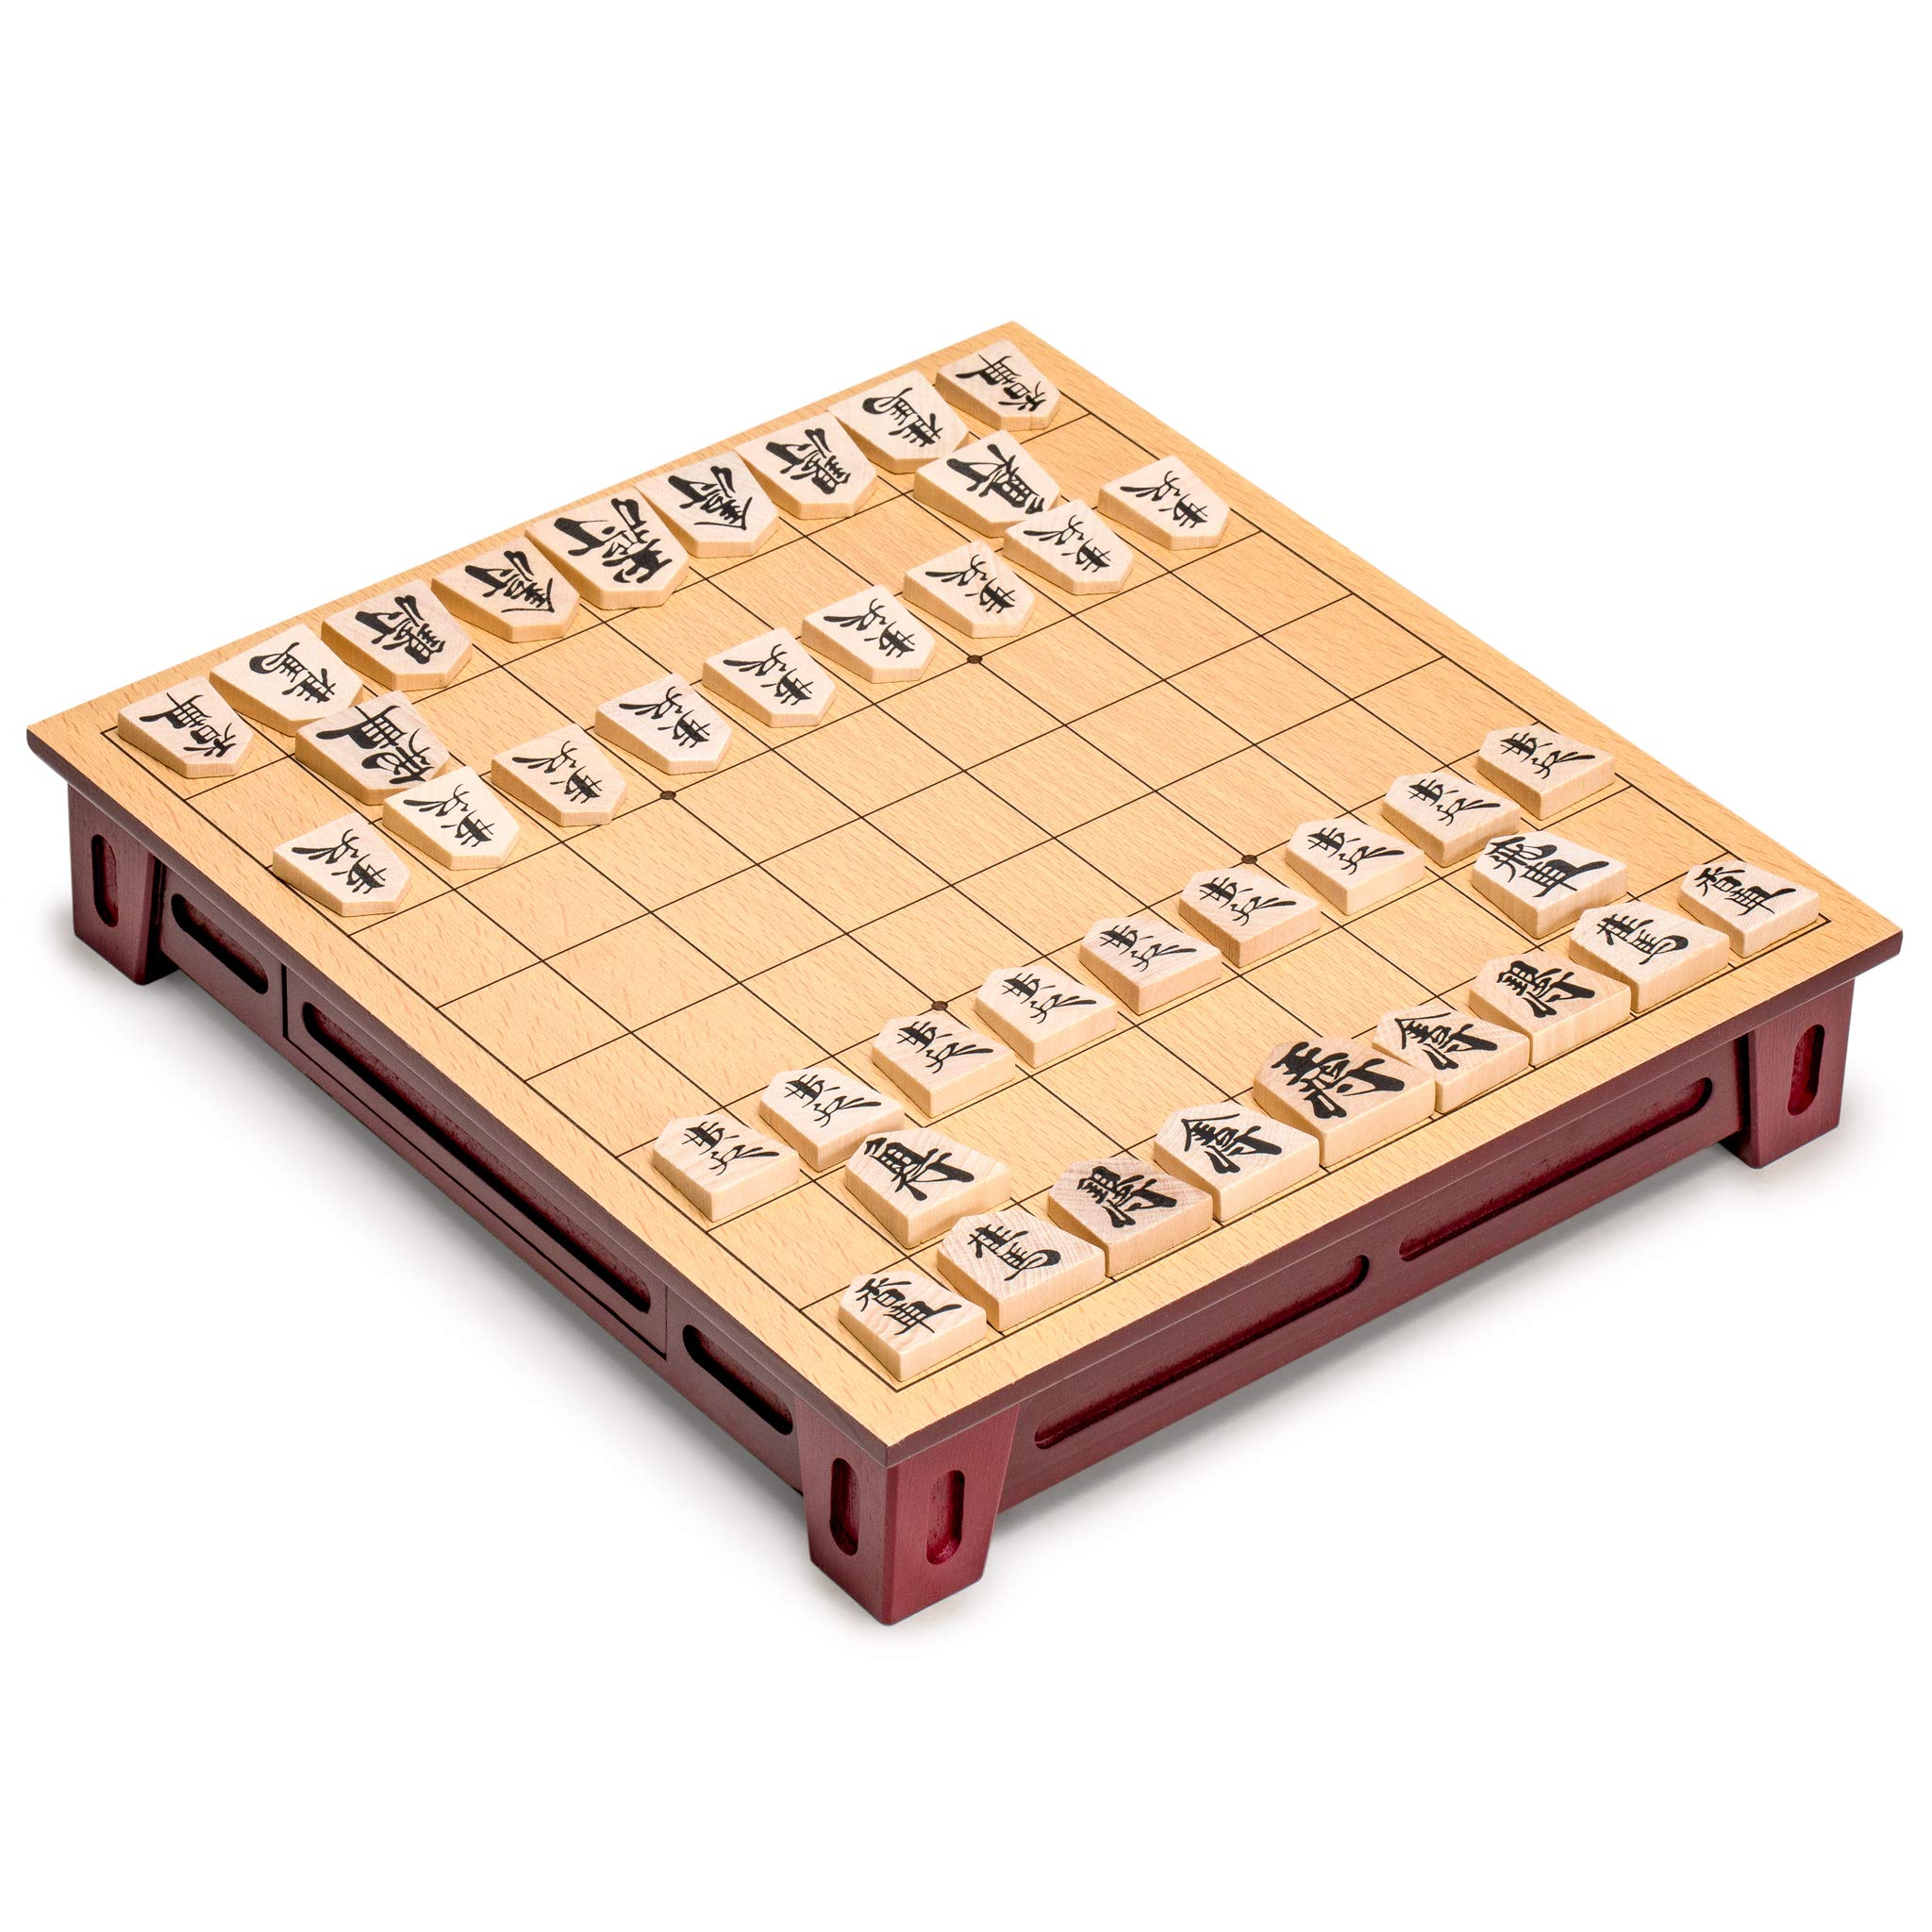 Yellow Mountain Imports Shogi Japanese Chess Game Set - Wooden Board with Drawers and Traditional Koma Playing Pieces